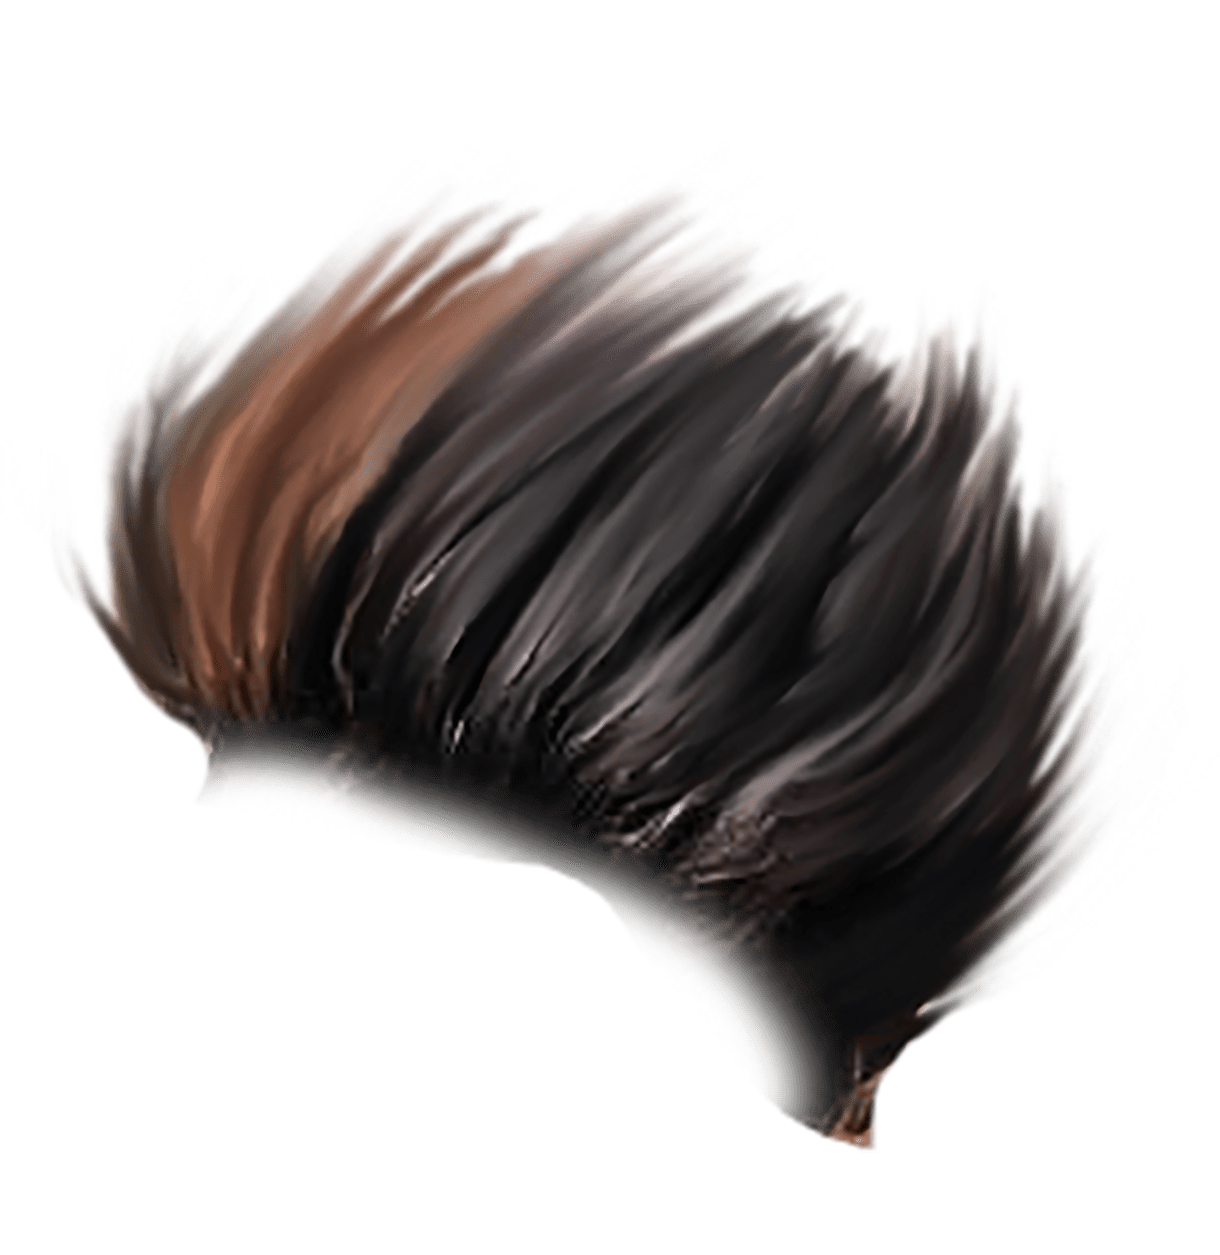 25+ Top CB Hair Png HD Collection 2018 For Picsart Editing Latest.